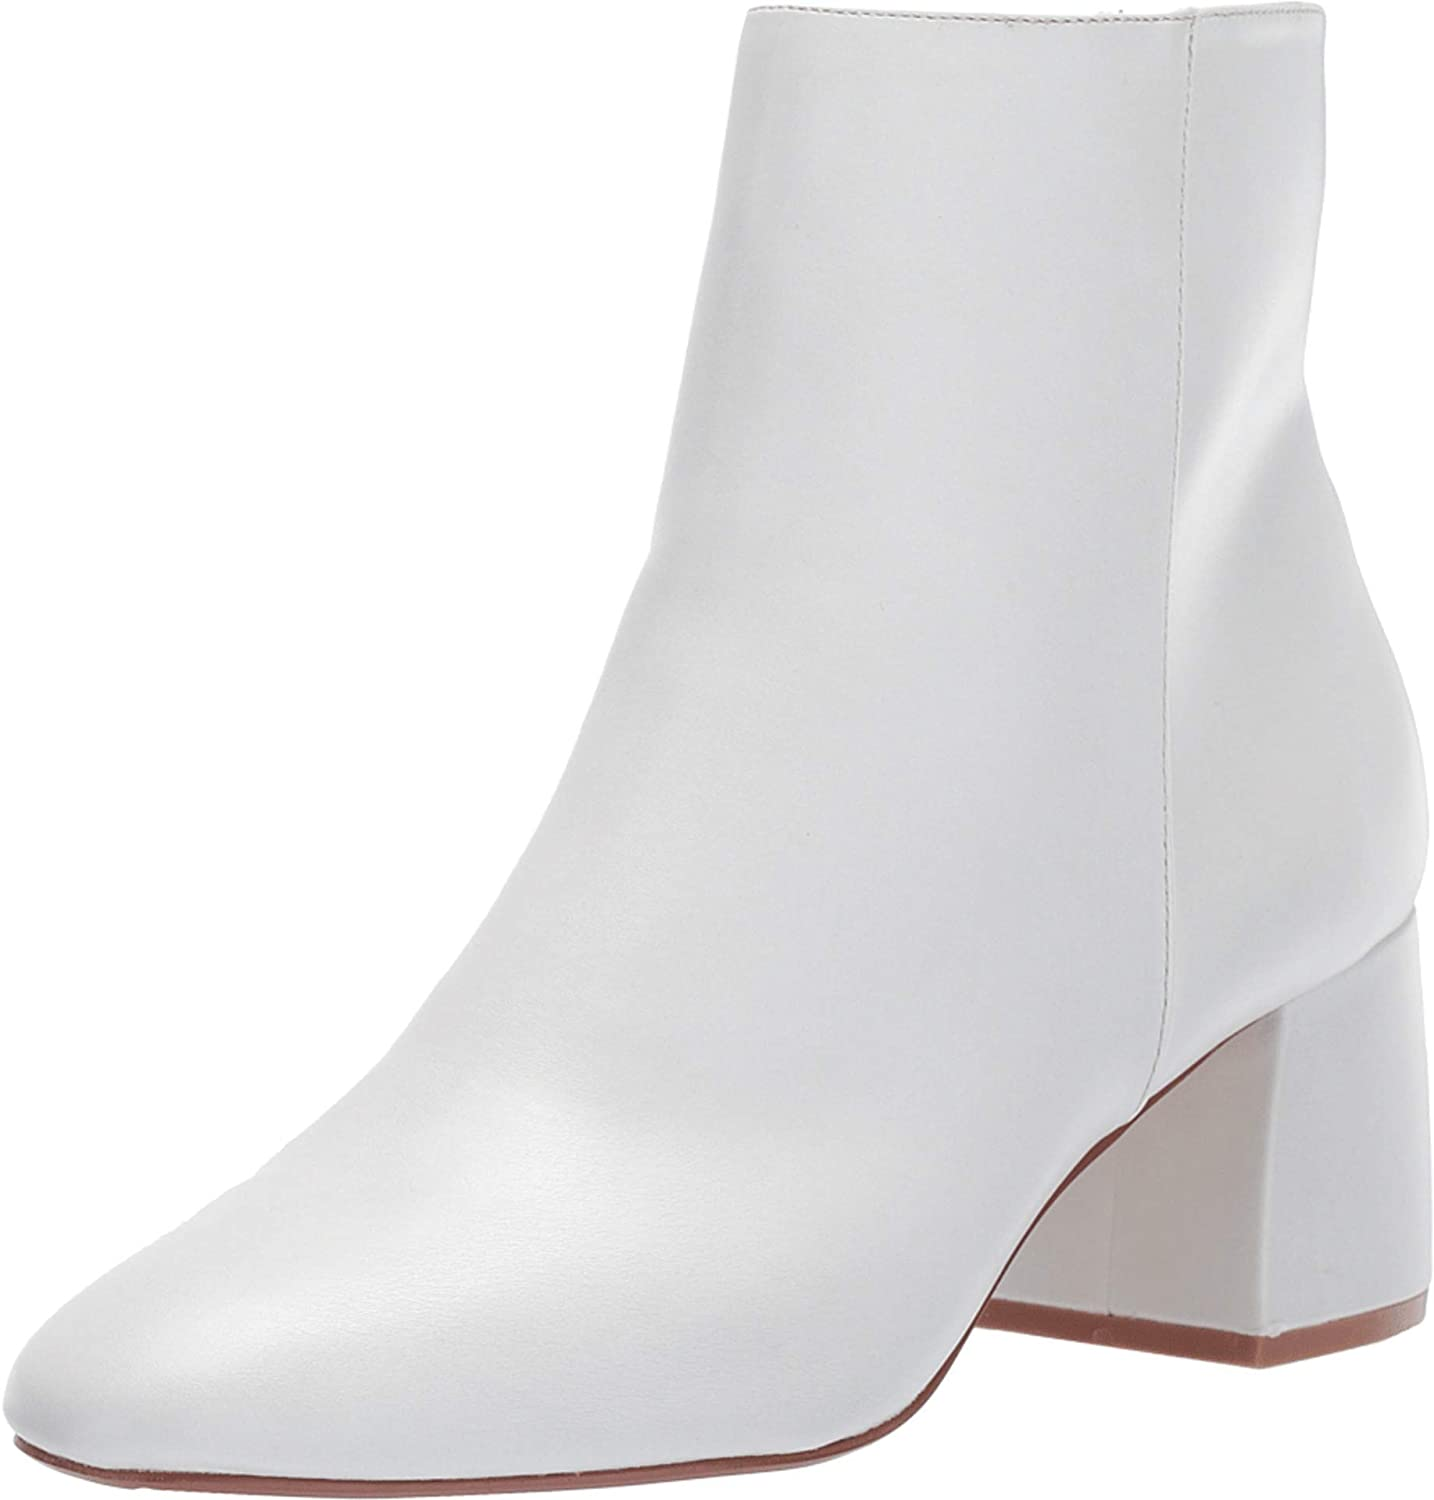 Chinese Laundry Women's Davinna Ankle Boot